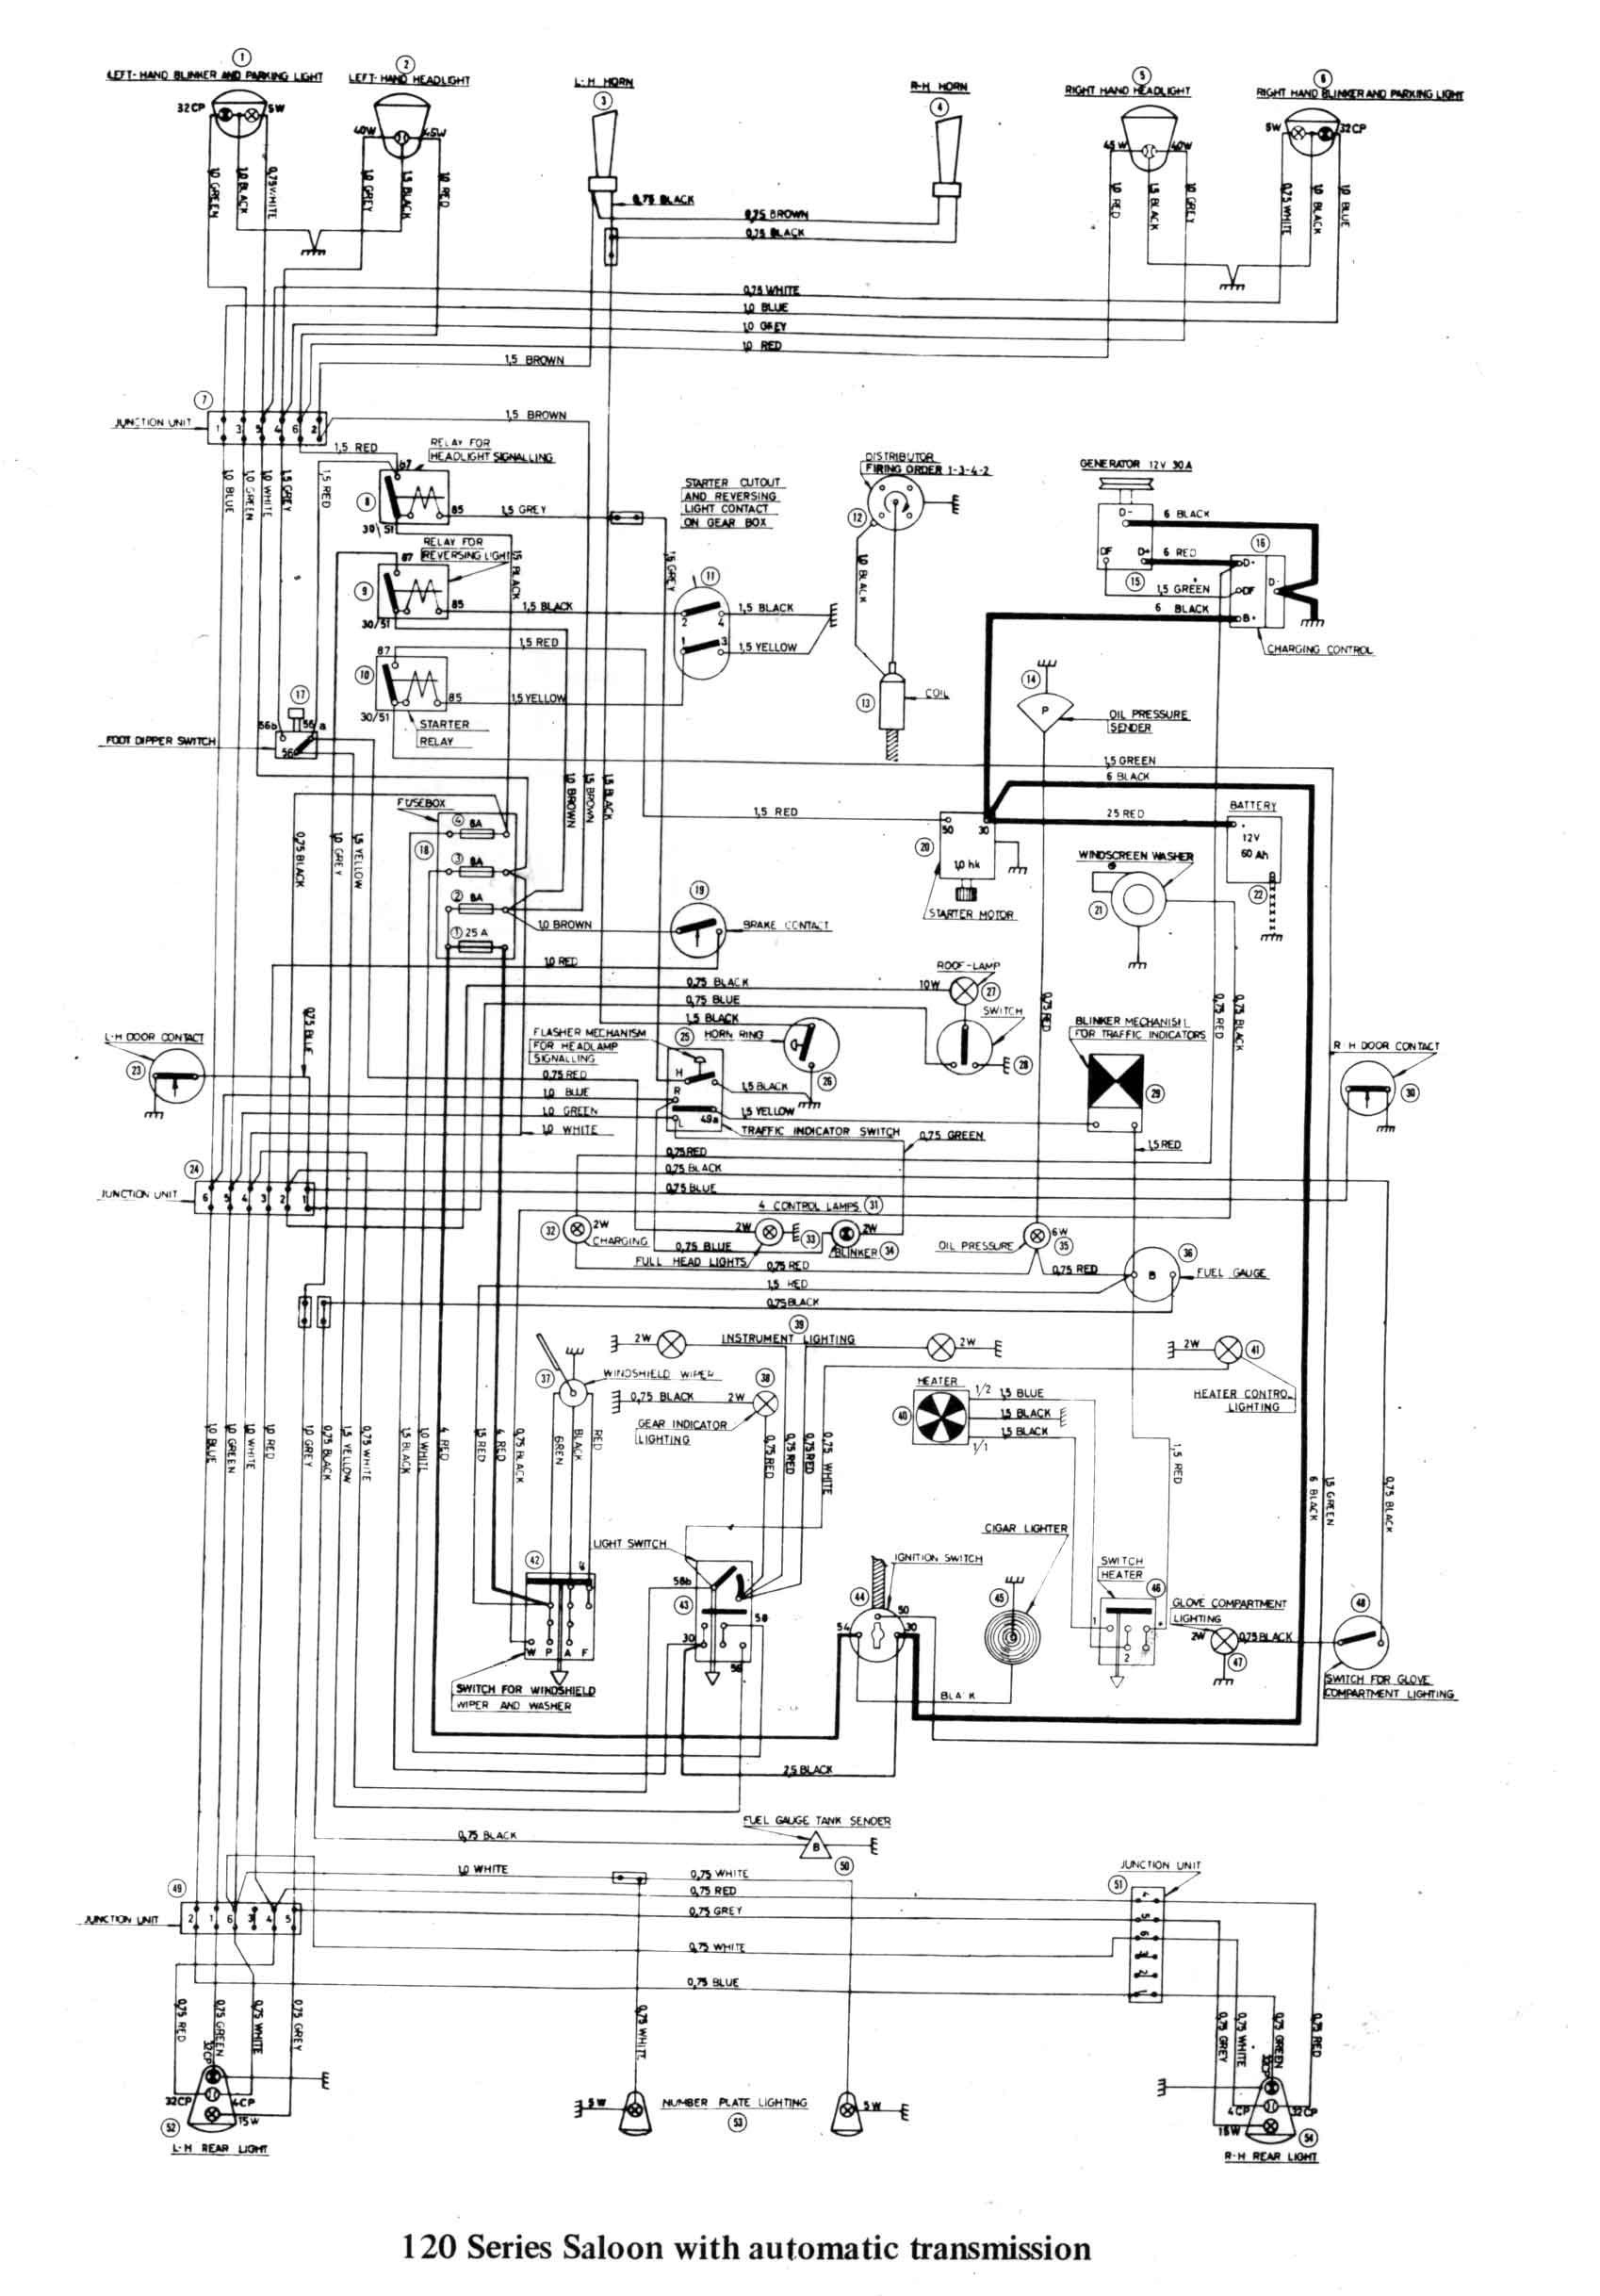 1983 peterbilt 359 wiring diagram chevy one wire alternator schematic library automotive practice new model 348 362 car tuning center